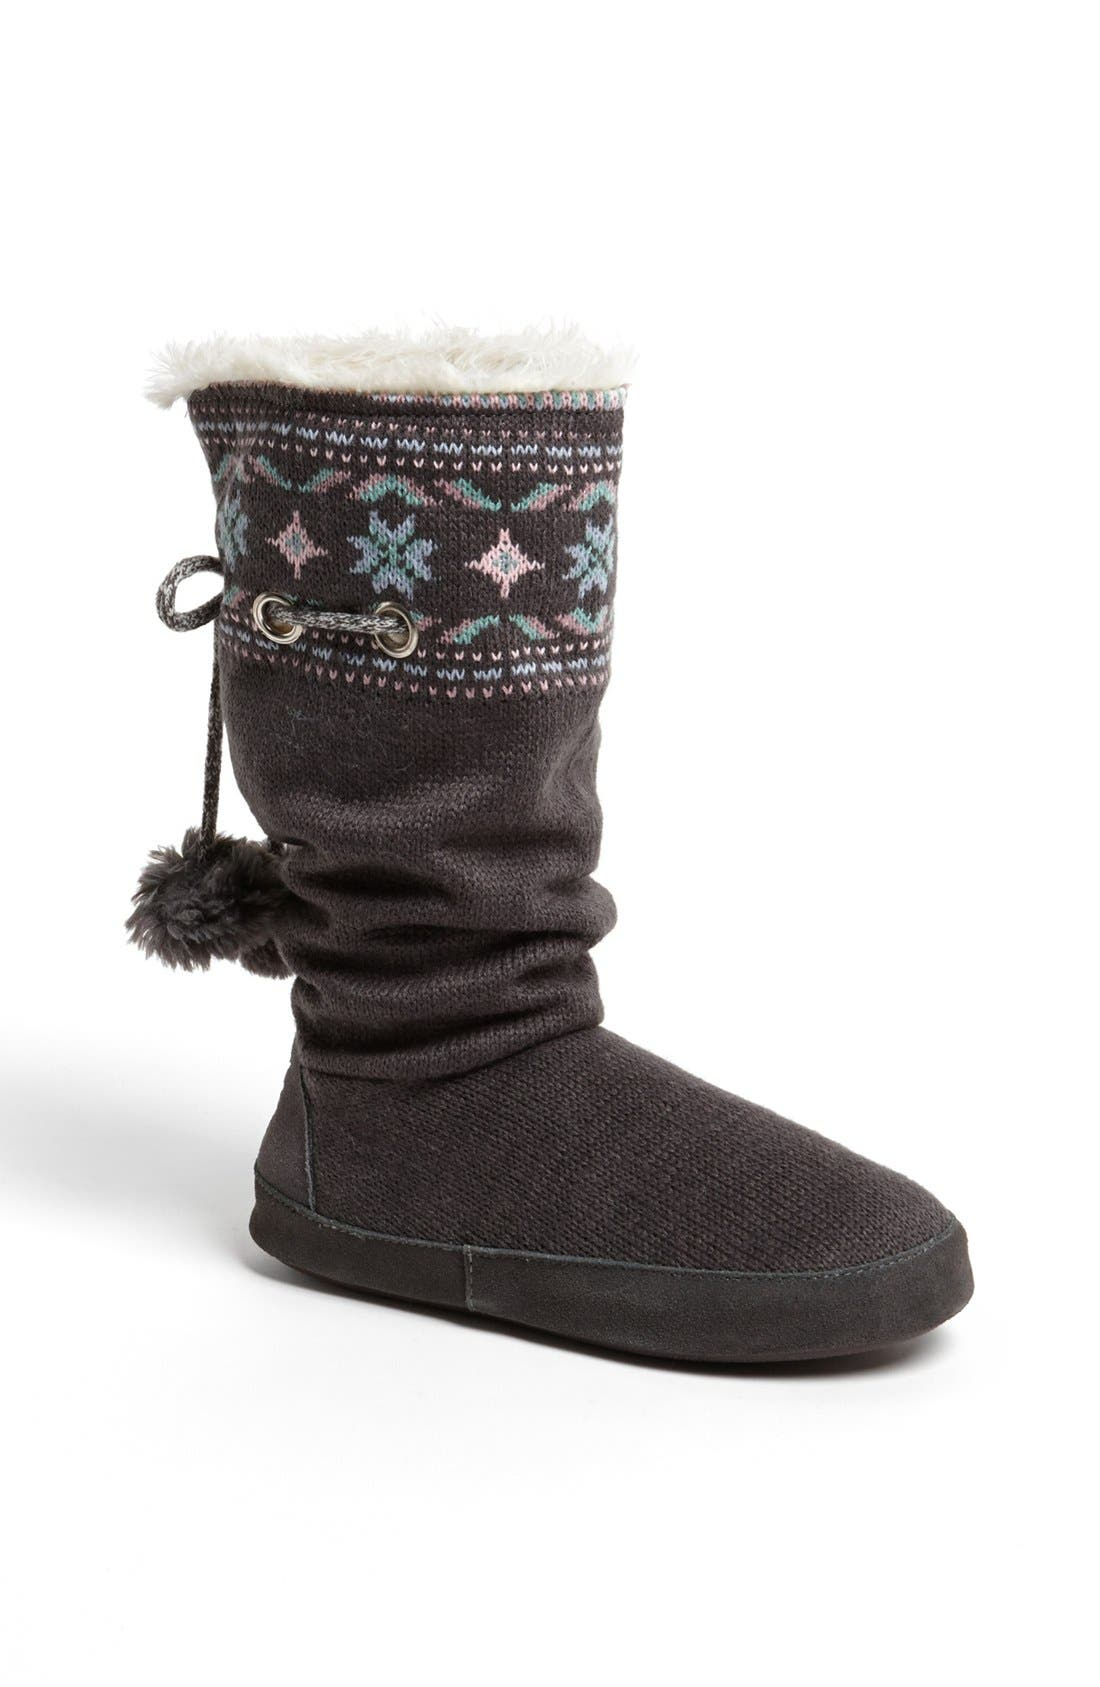 Alternate Image 1 Selected - MUK LUKS 'Emma' Slipper